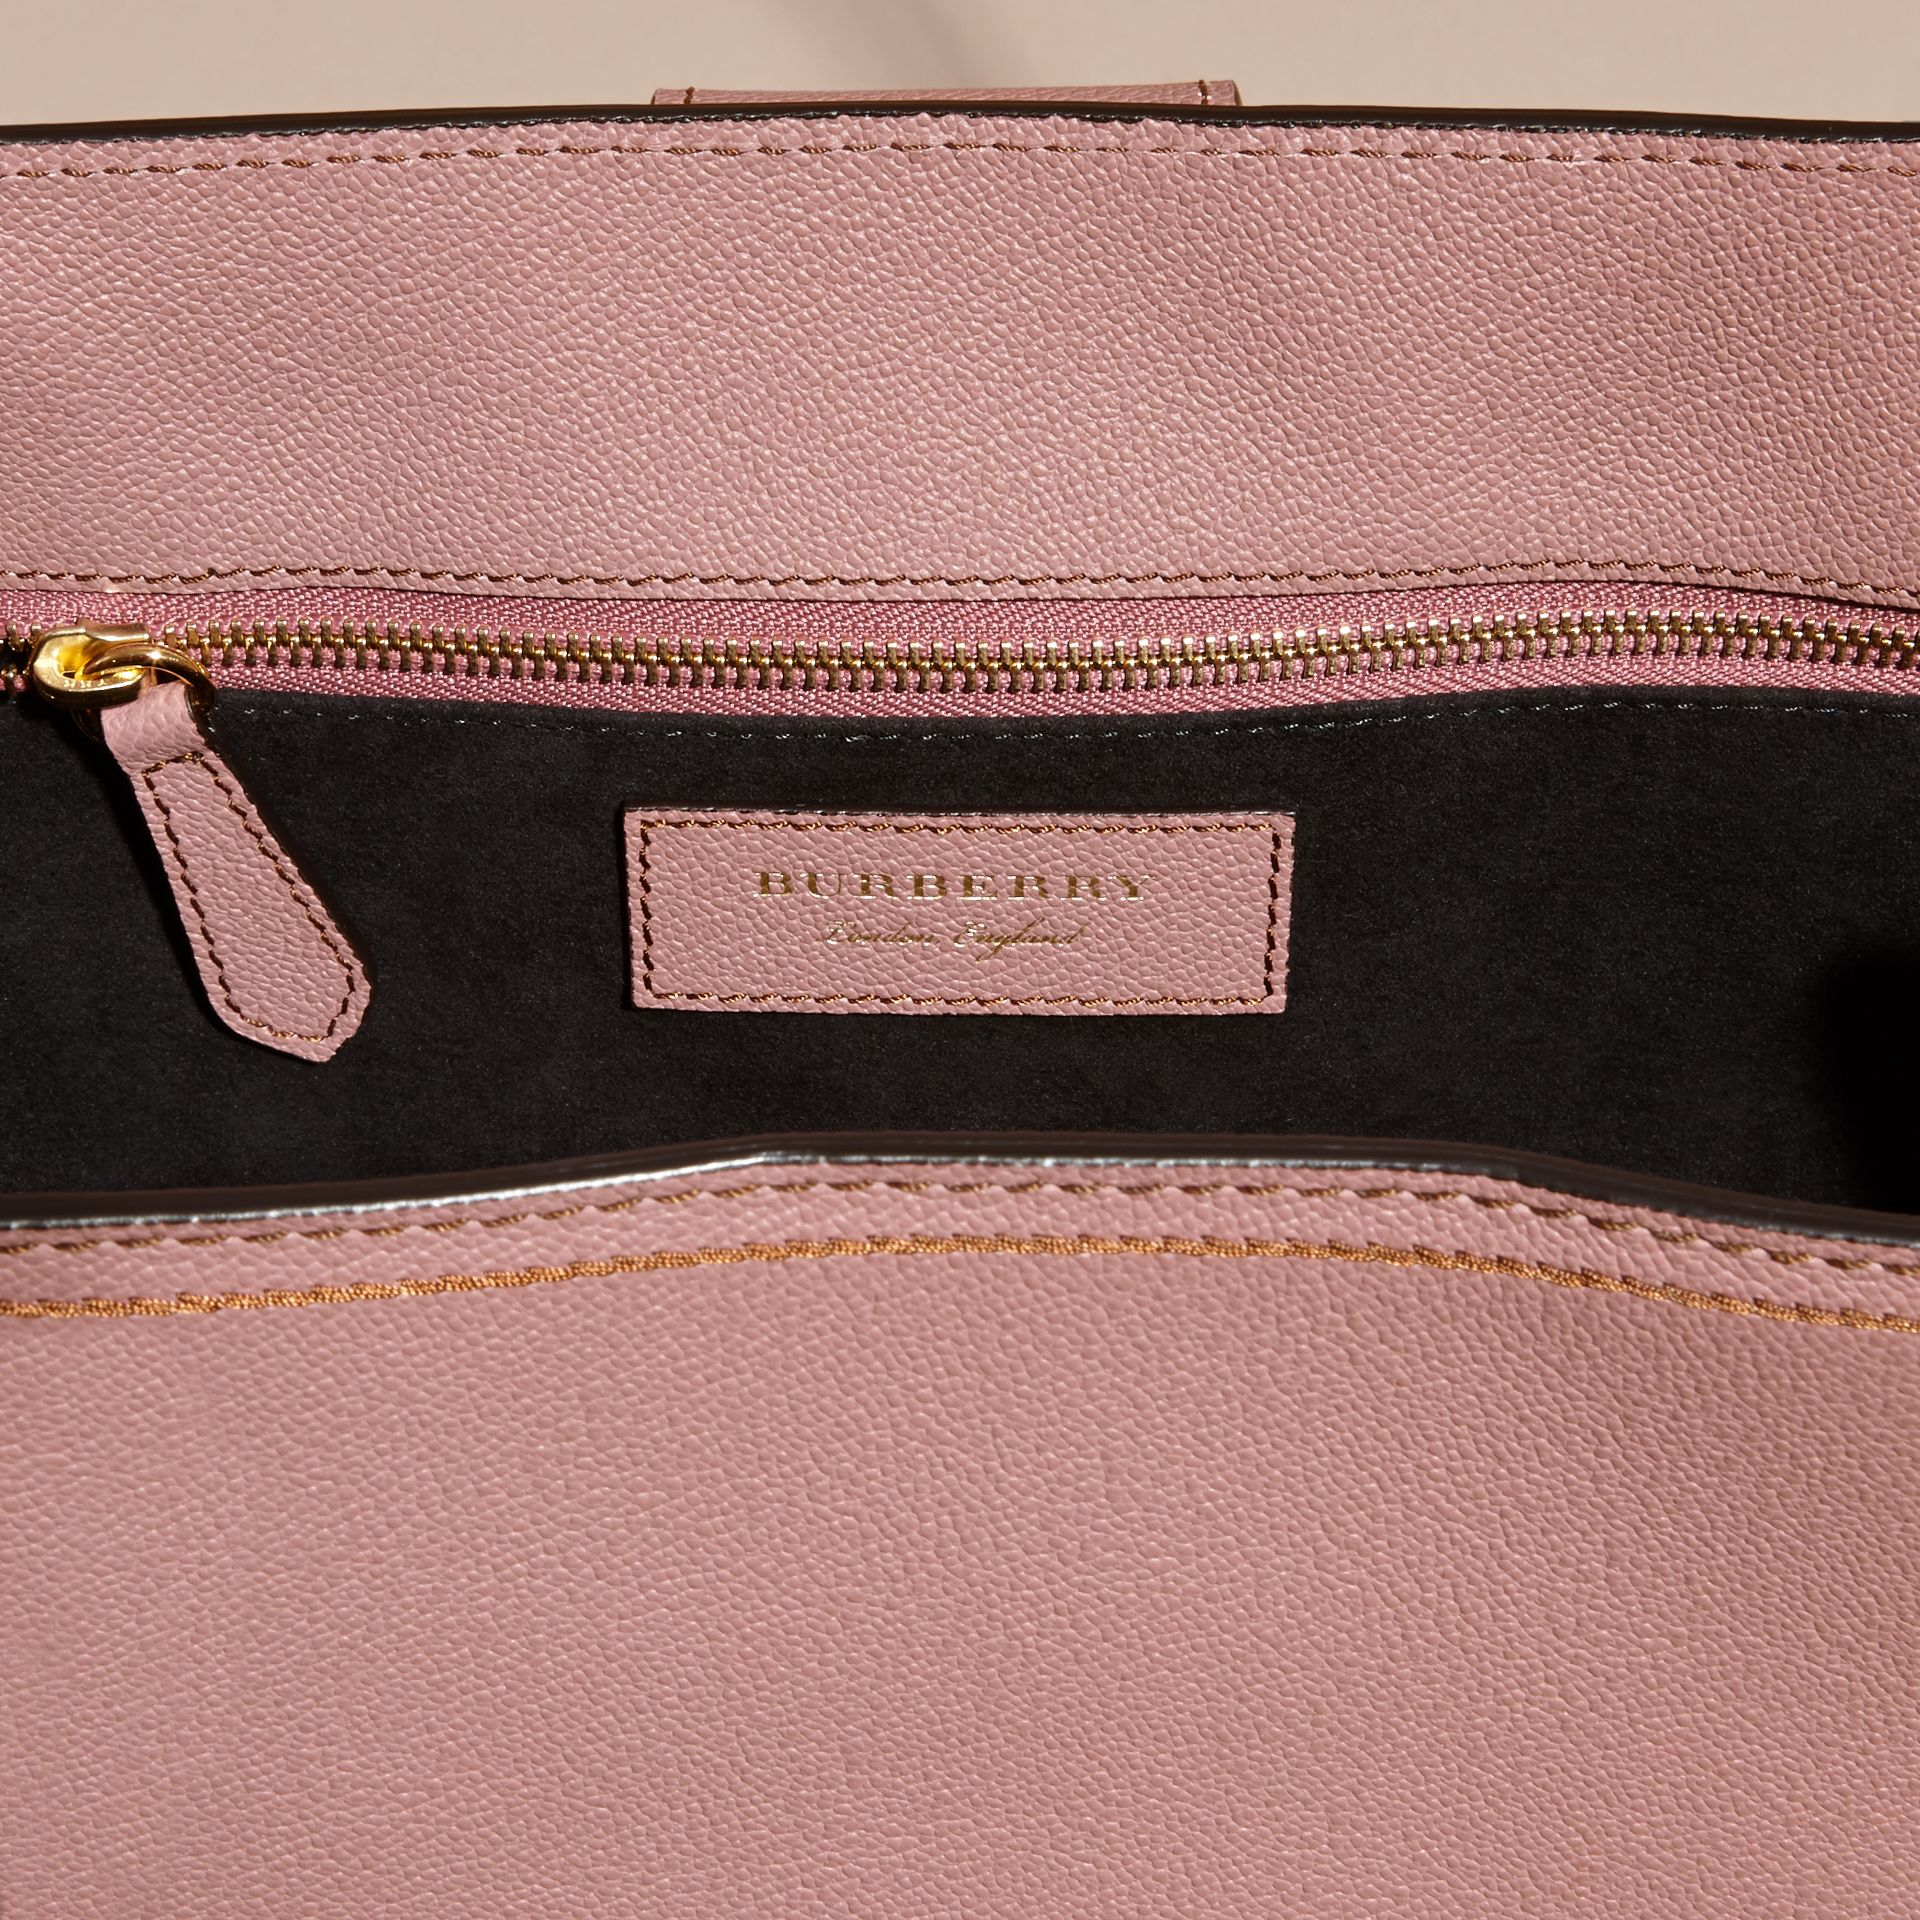 Dusty pink The Medium Buckle Tote in Grainy Leather and Python - gallery image 6